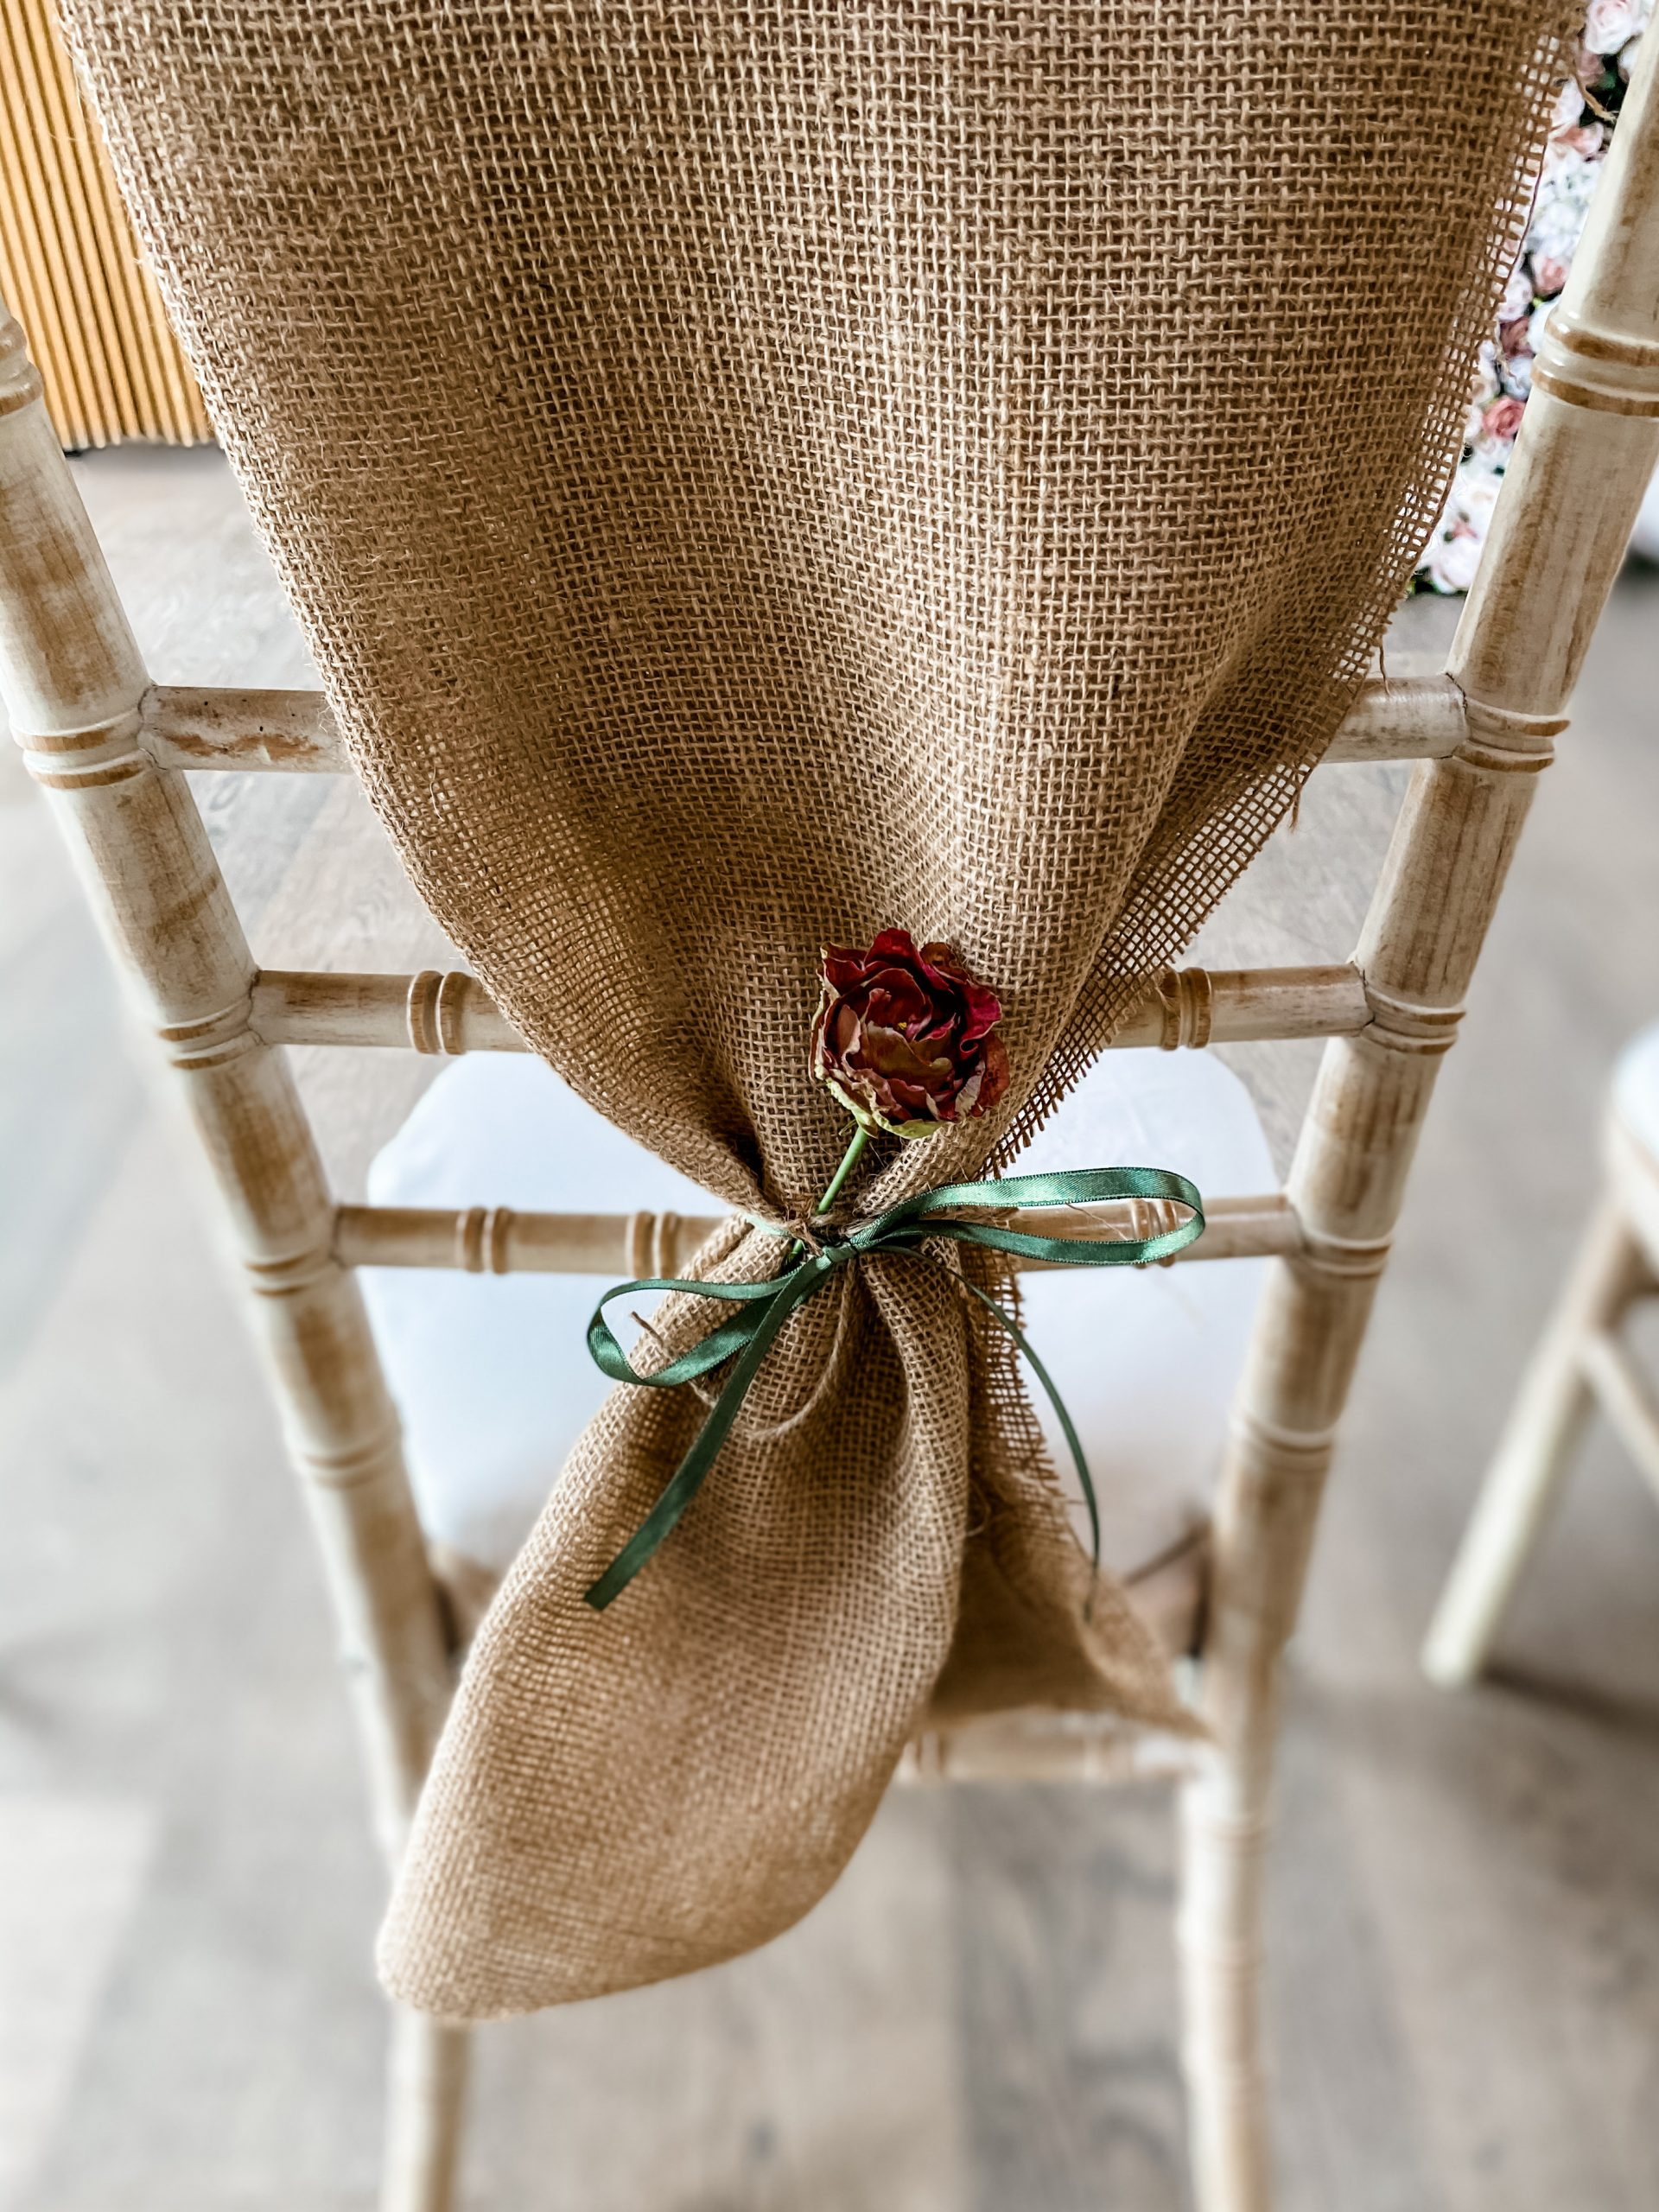 Hessian chair back for wedding or event, with a sprig of flower and silk ribbon